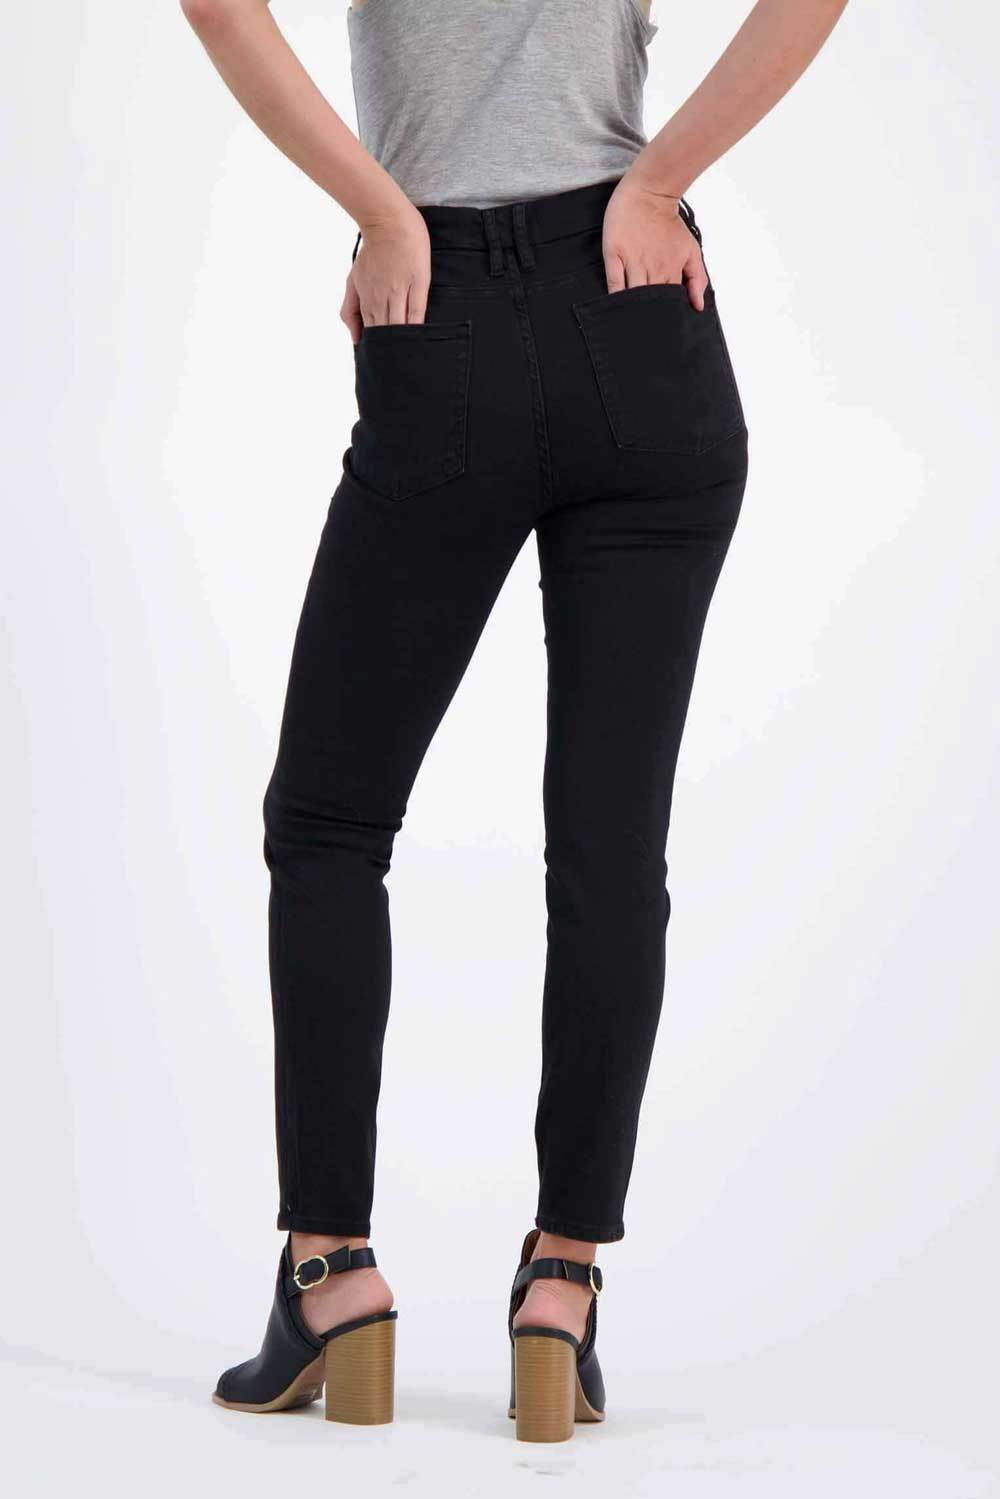 Milk Money Curvy Jeans Black - MILK MONEY